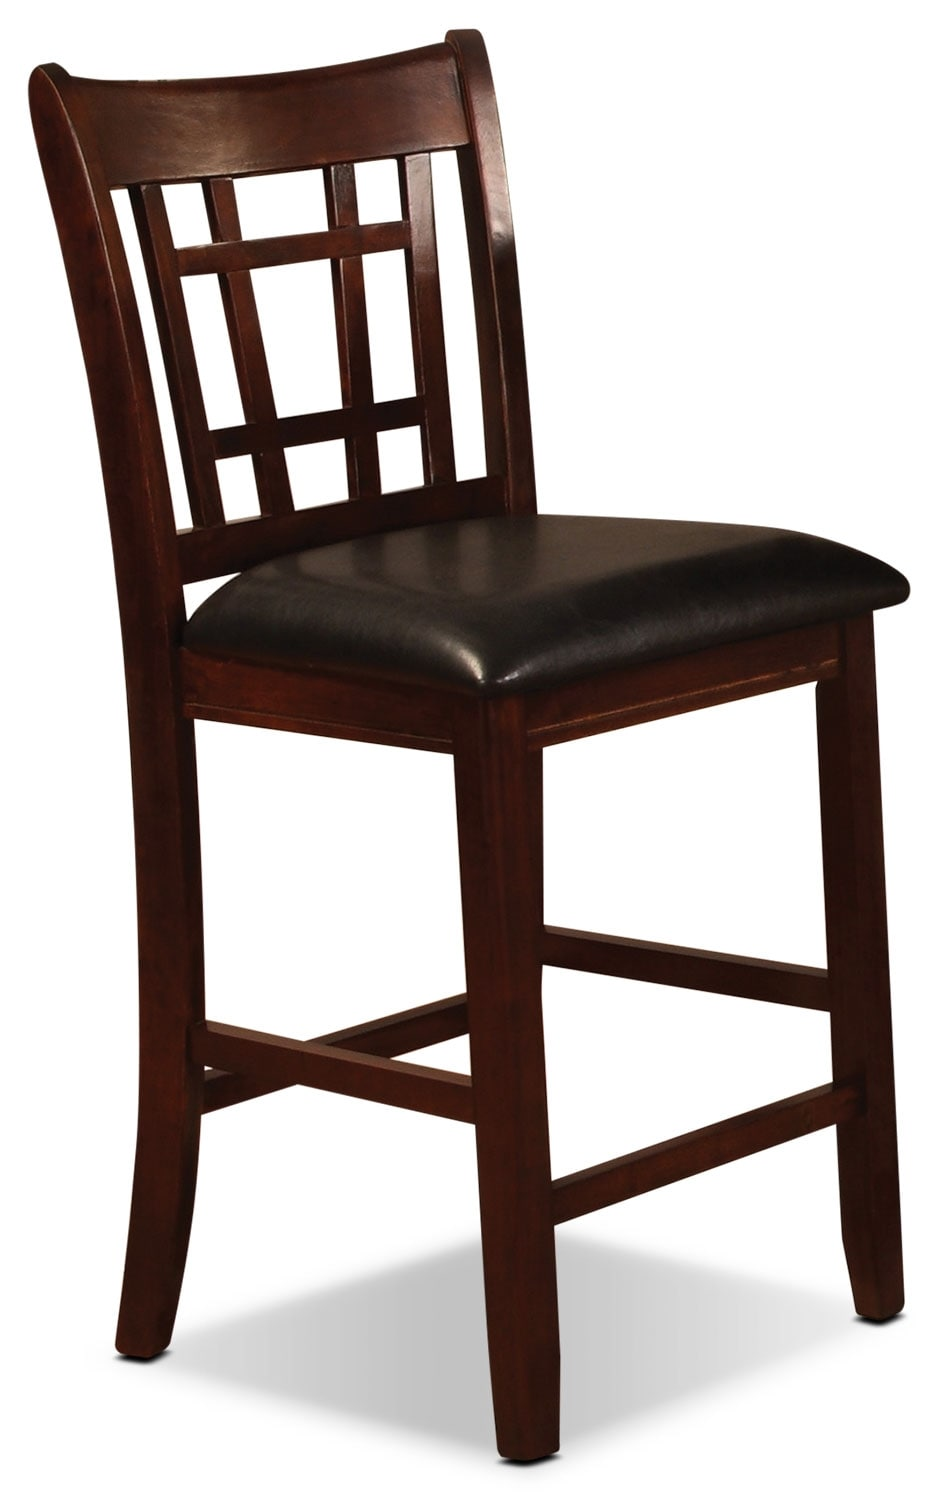 Dalton Chocolate Counter-Height Chair